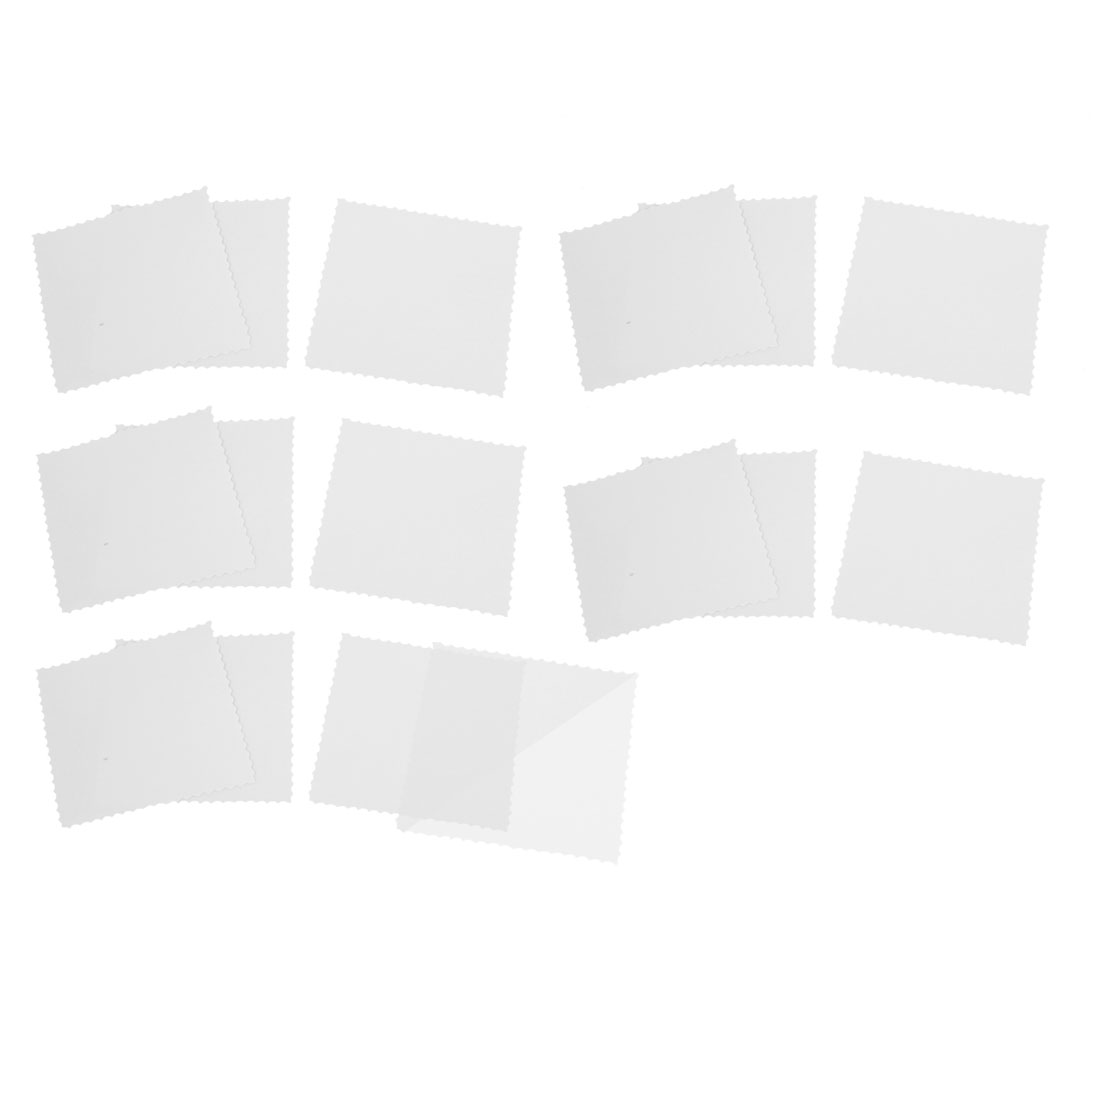 15PCS 9.2cm Square Shaped Car Window Signal Clear Cling Static Sticker Decor